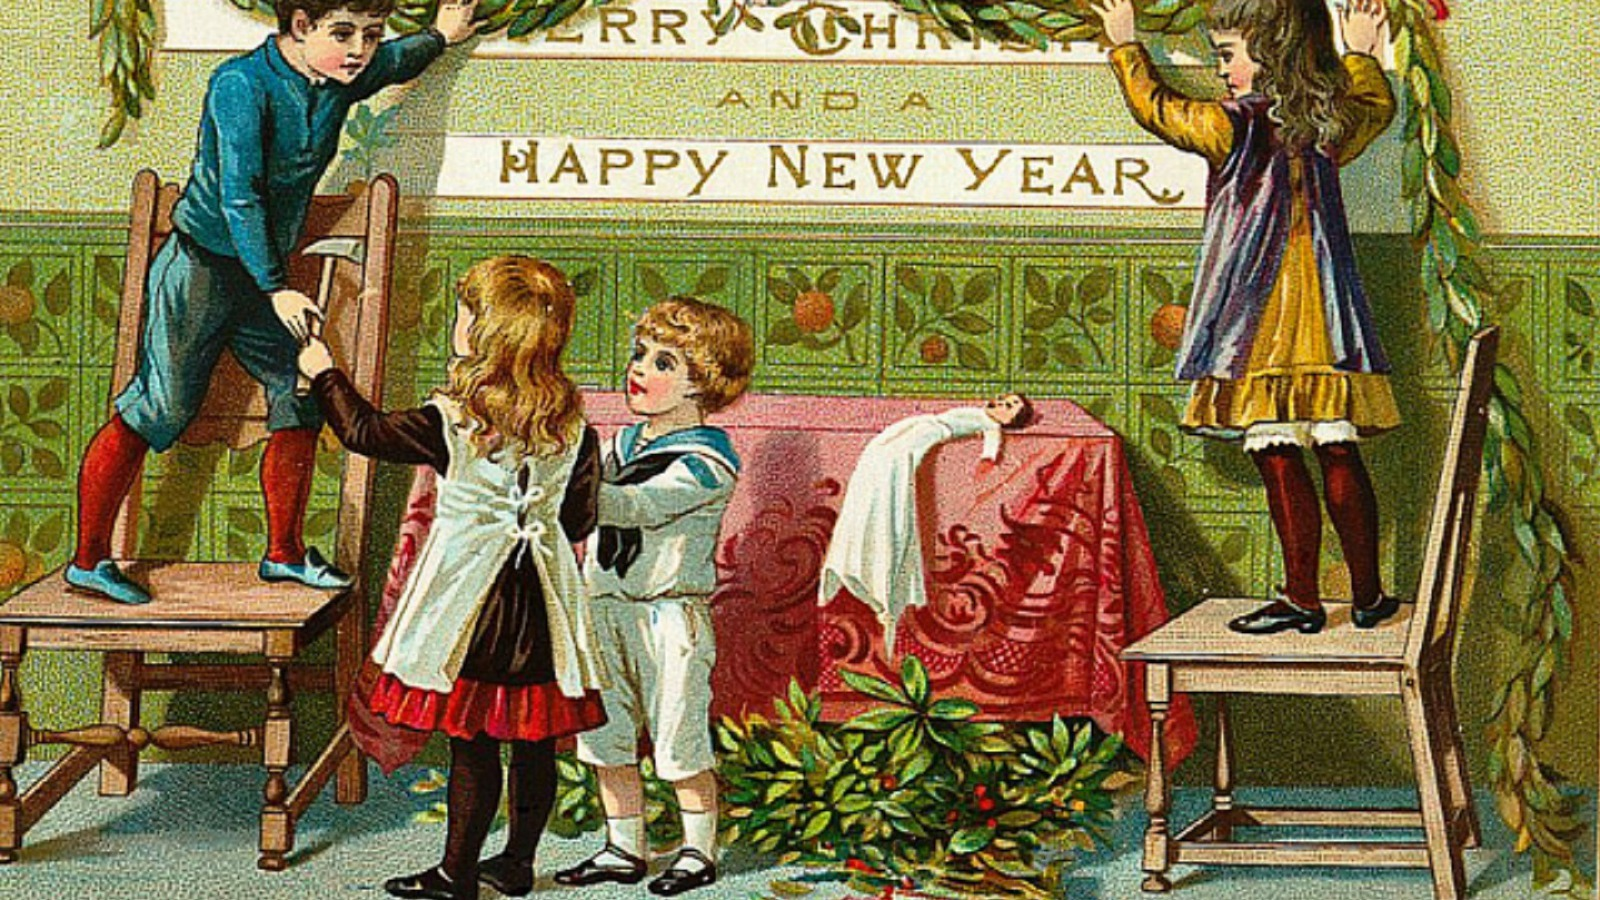 Vintage Merry Christmas & Happy New Year image